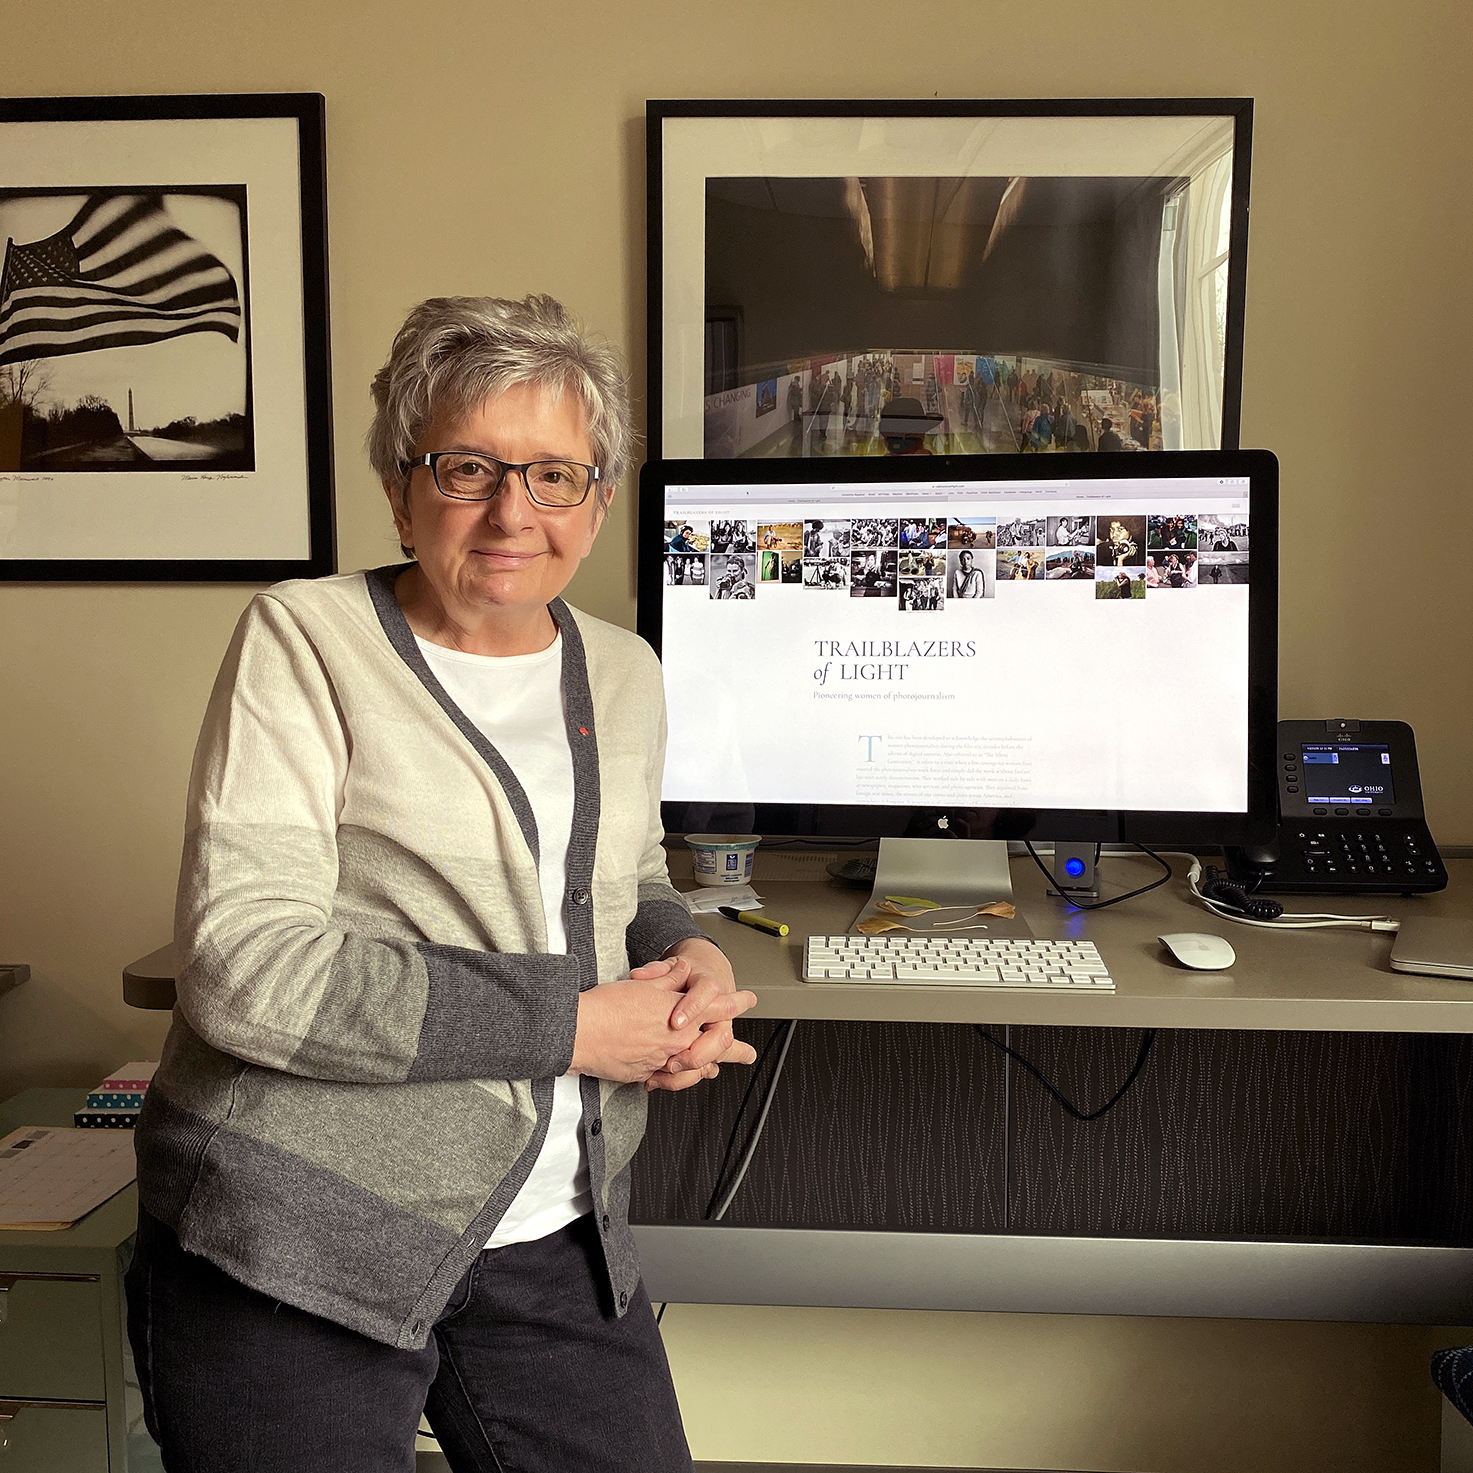 Marcy Nighswander stands in front of a monitor with the trailblazers of light website